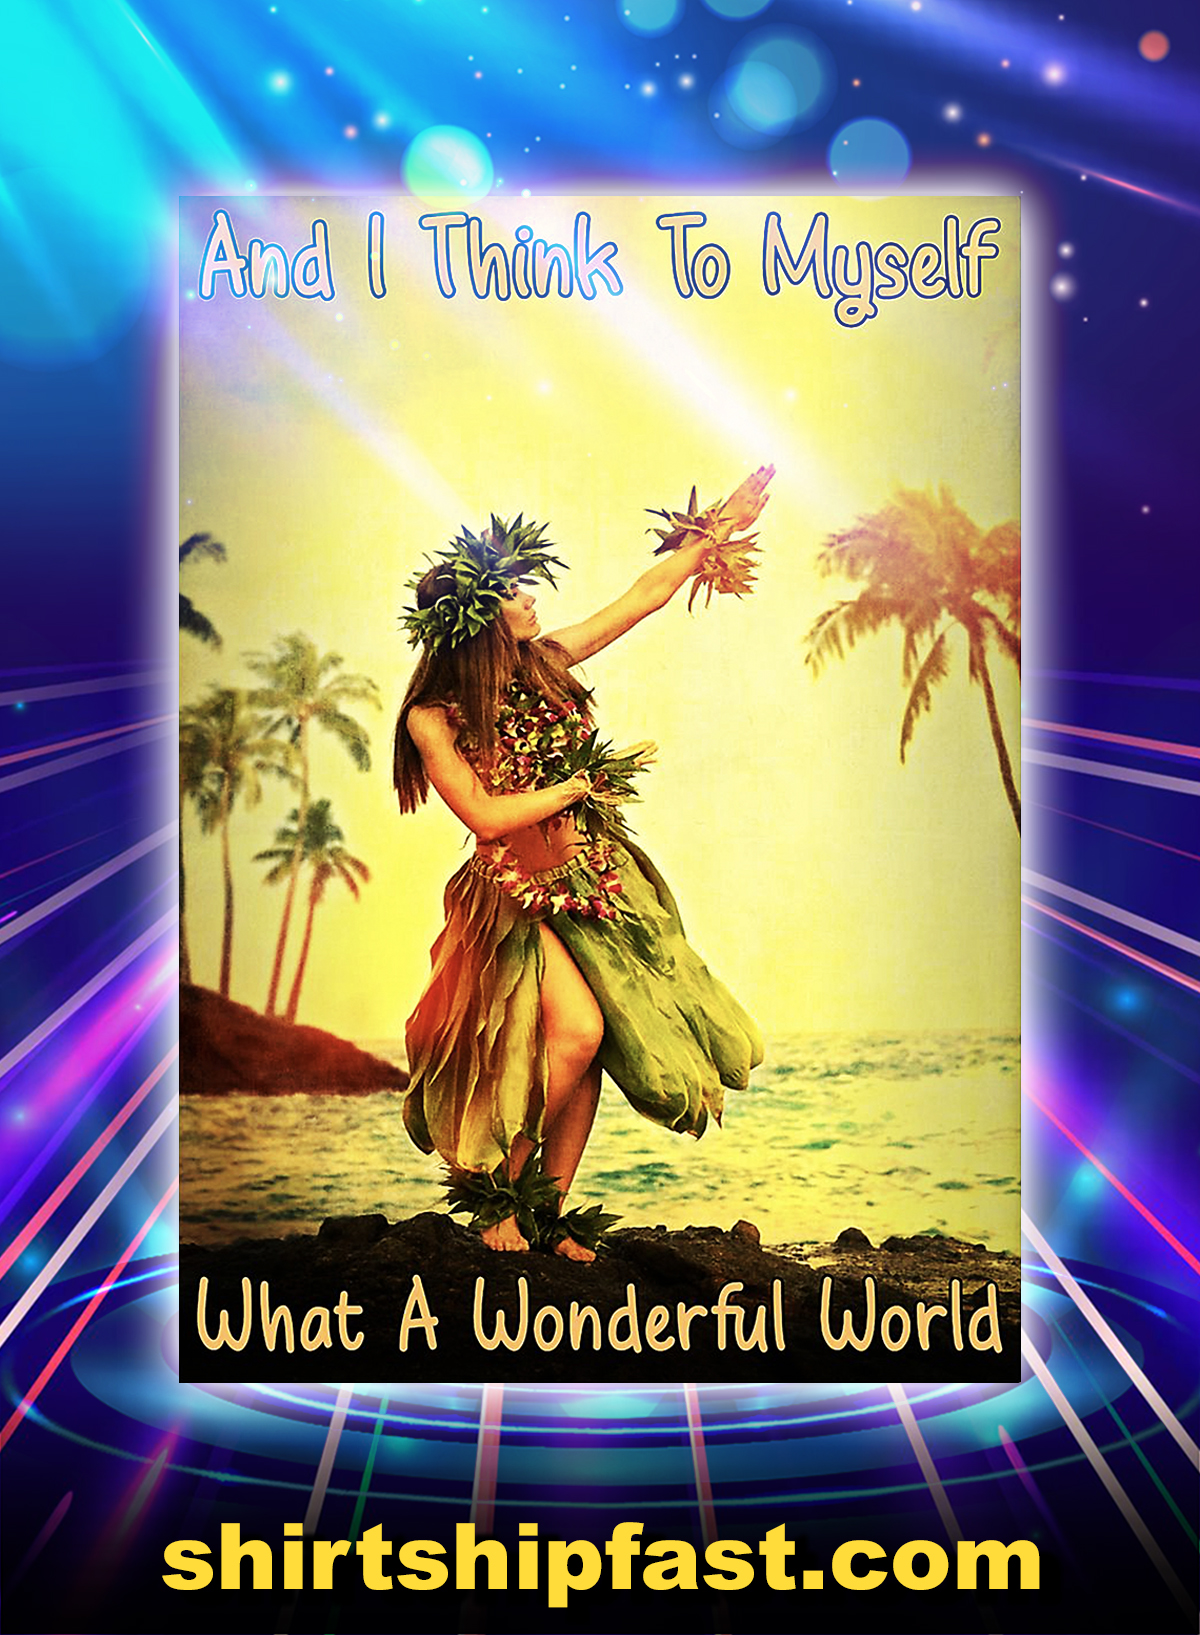 Hawaii girl and i think to myself what a wonderful world poster - A4